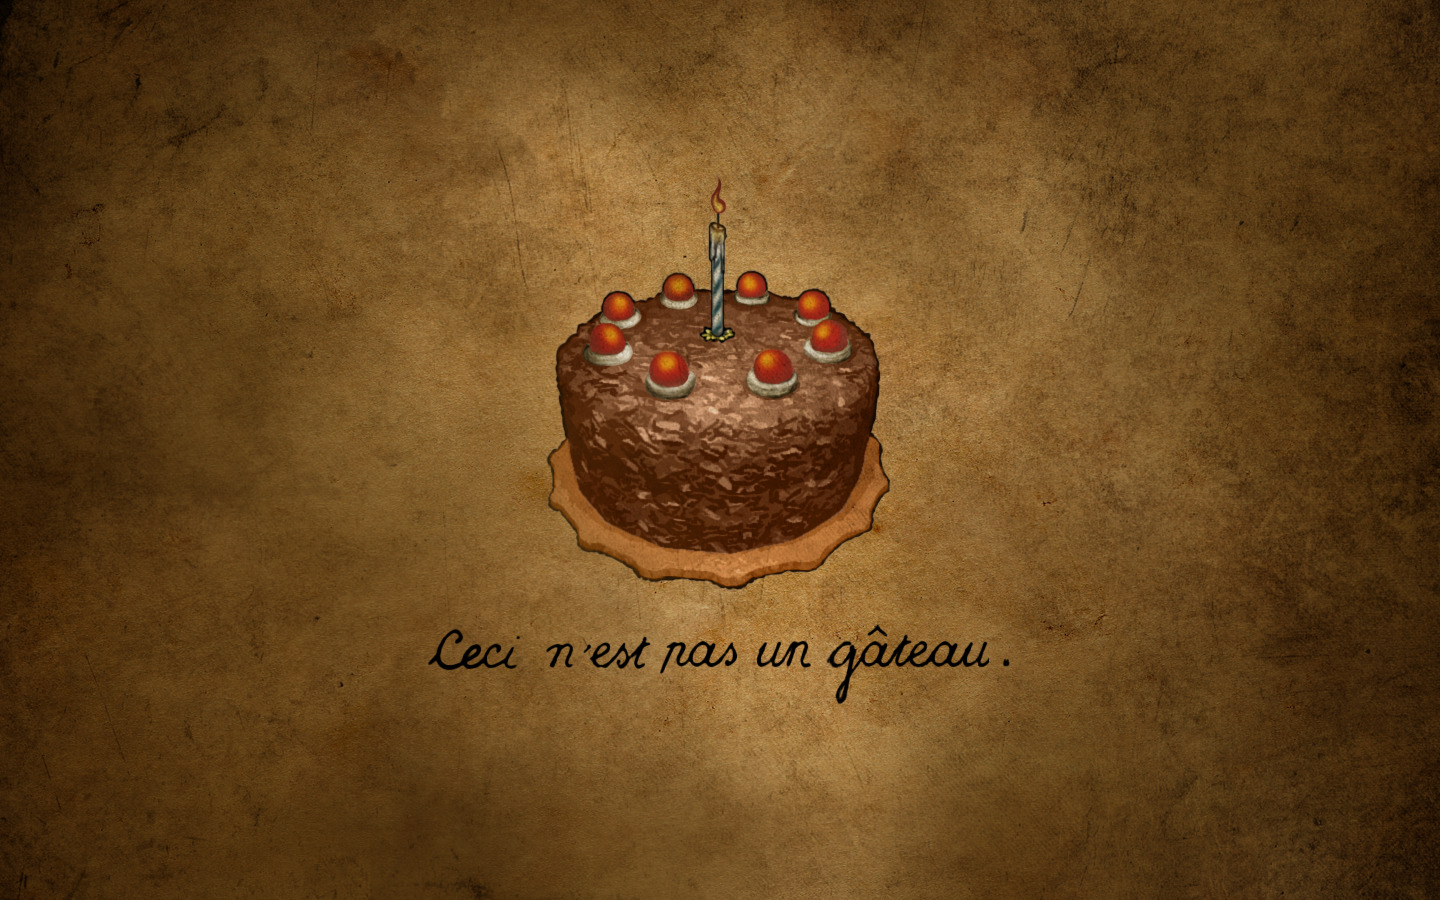 This is not cake HD Wallpaper